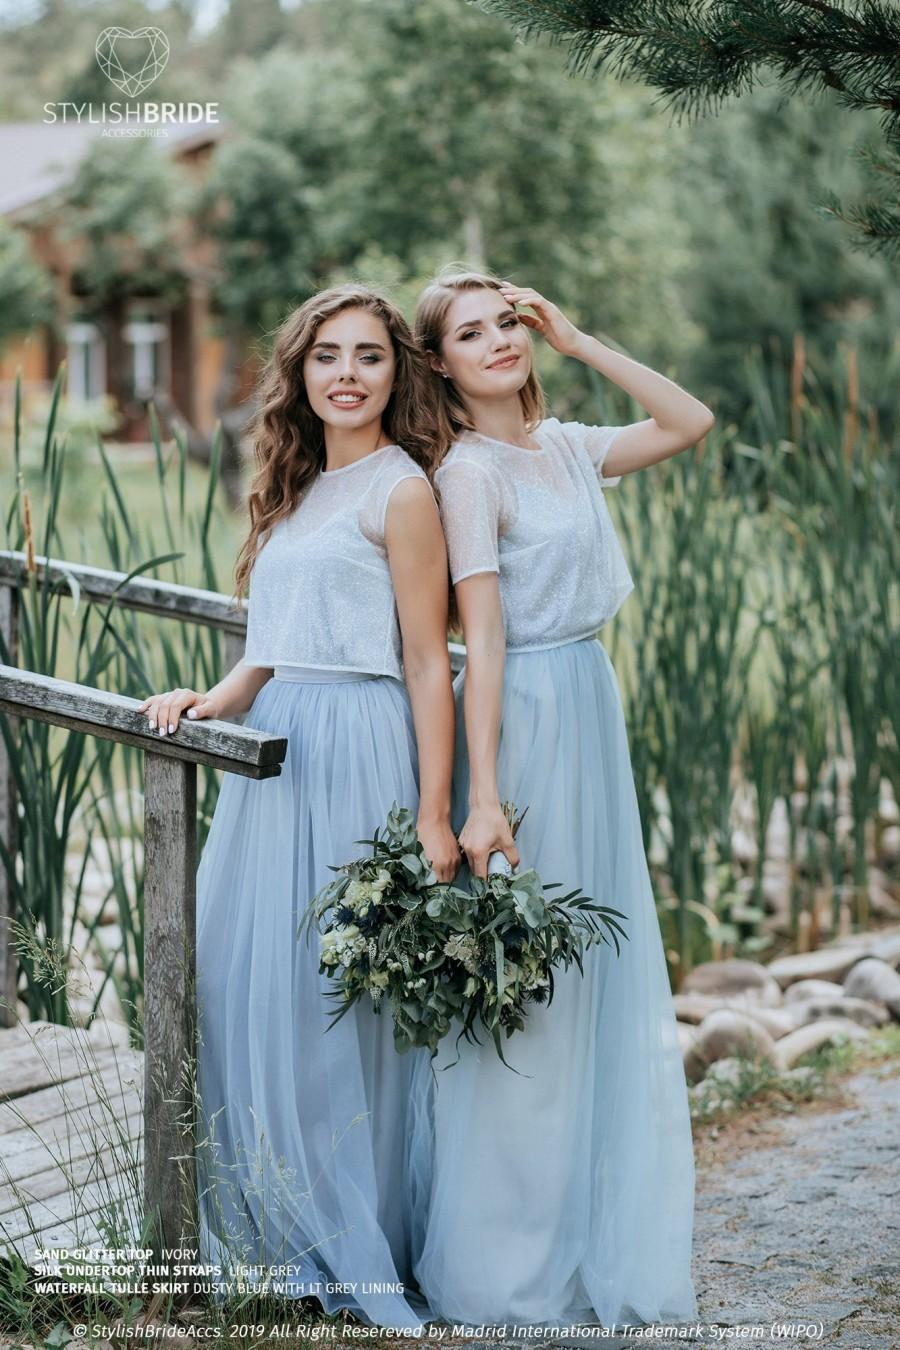 Hochzeit - Sand Glitter Separates: Dusty Blue Waterfall Tulle Skirt and Ivory Sand Glitter Crop Top with Light Grey Silk Under top -  3 pieces set